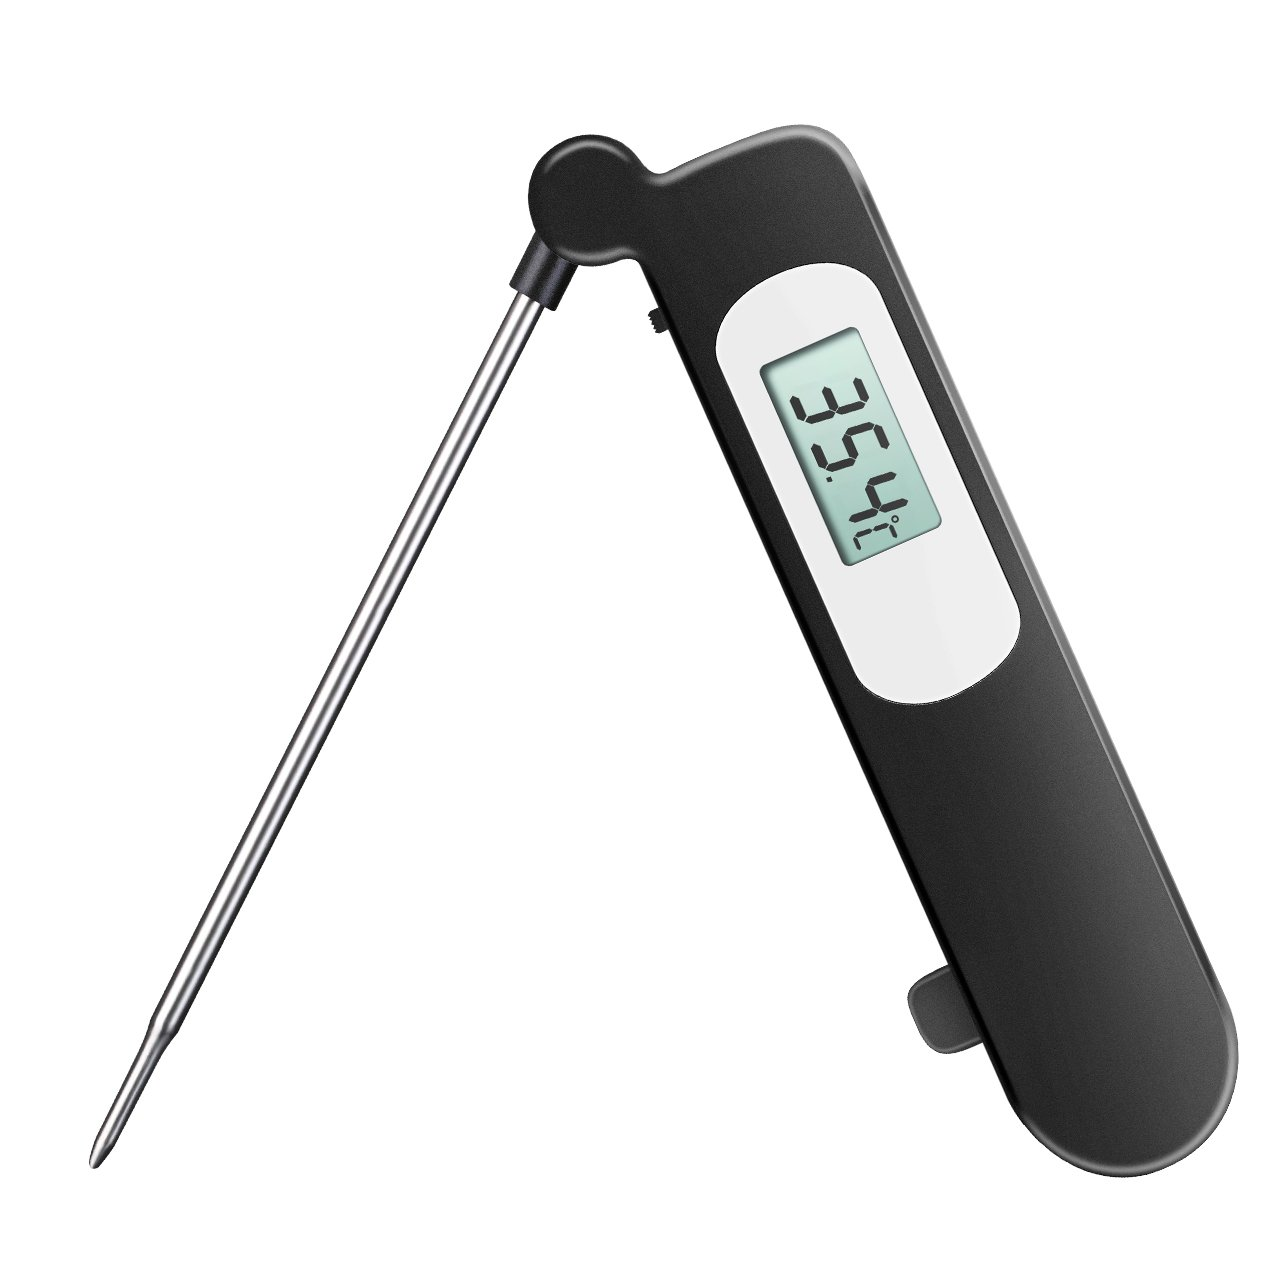 Topelek CP3-GDUK Digital Cooking Thermometer, Stainless, Long Probe, LCD Screen, with Instant Read